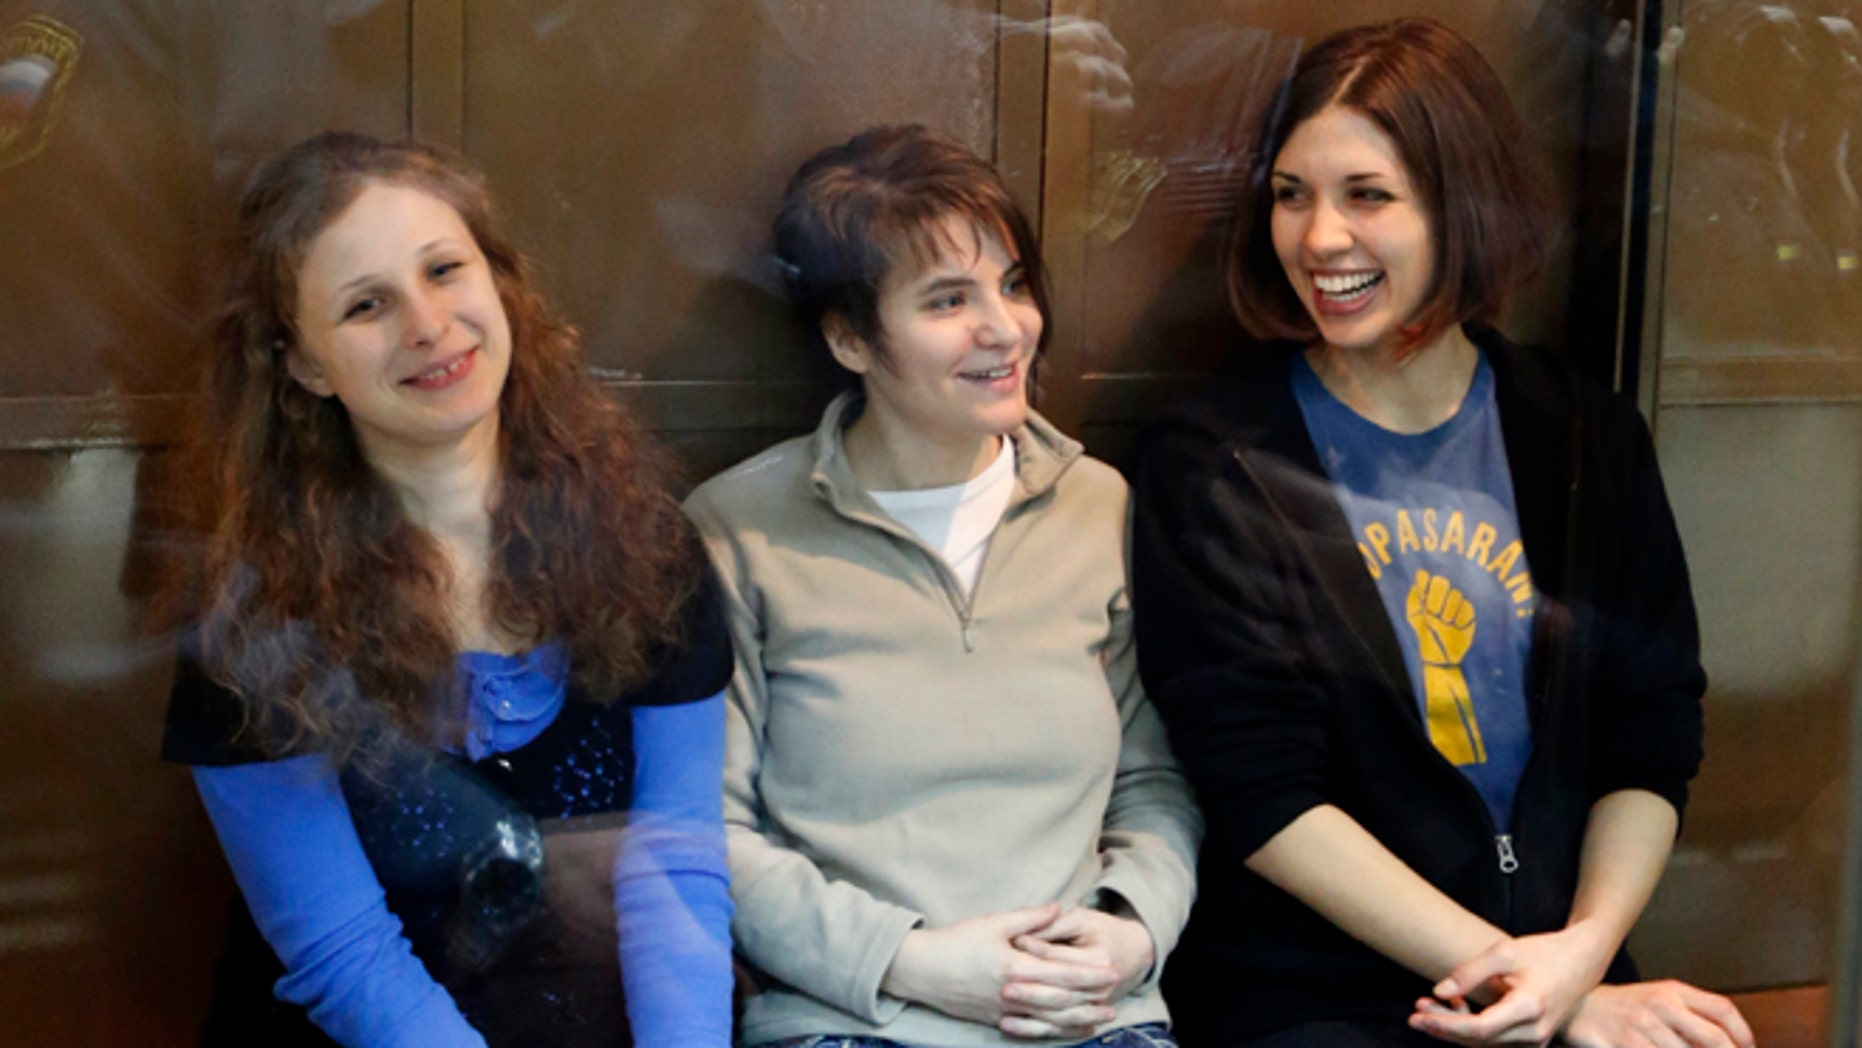 In this Oct. 1, 2012 file photo, feminist punk group Pussy Riot members, from left, Maria Alekhina, Yekaterina Samutsevich and Nadezhda Tolokonnikova sit in a glass cage at a court room in Moscow, Russia. Alekhina went on hunger strike May 22, 2013, in protest at not being allowed to attend her own parole hearing in Perm province.